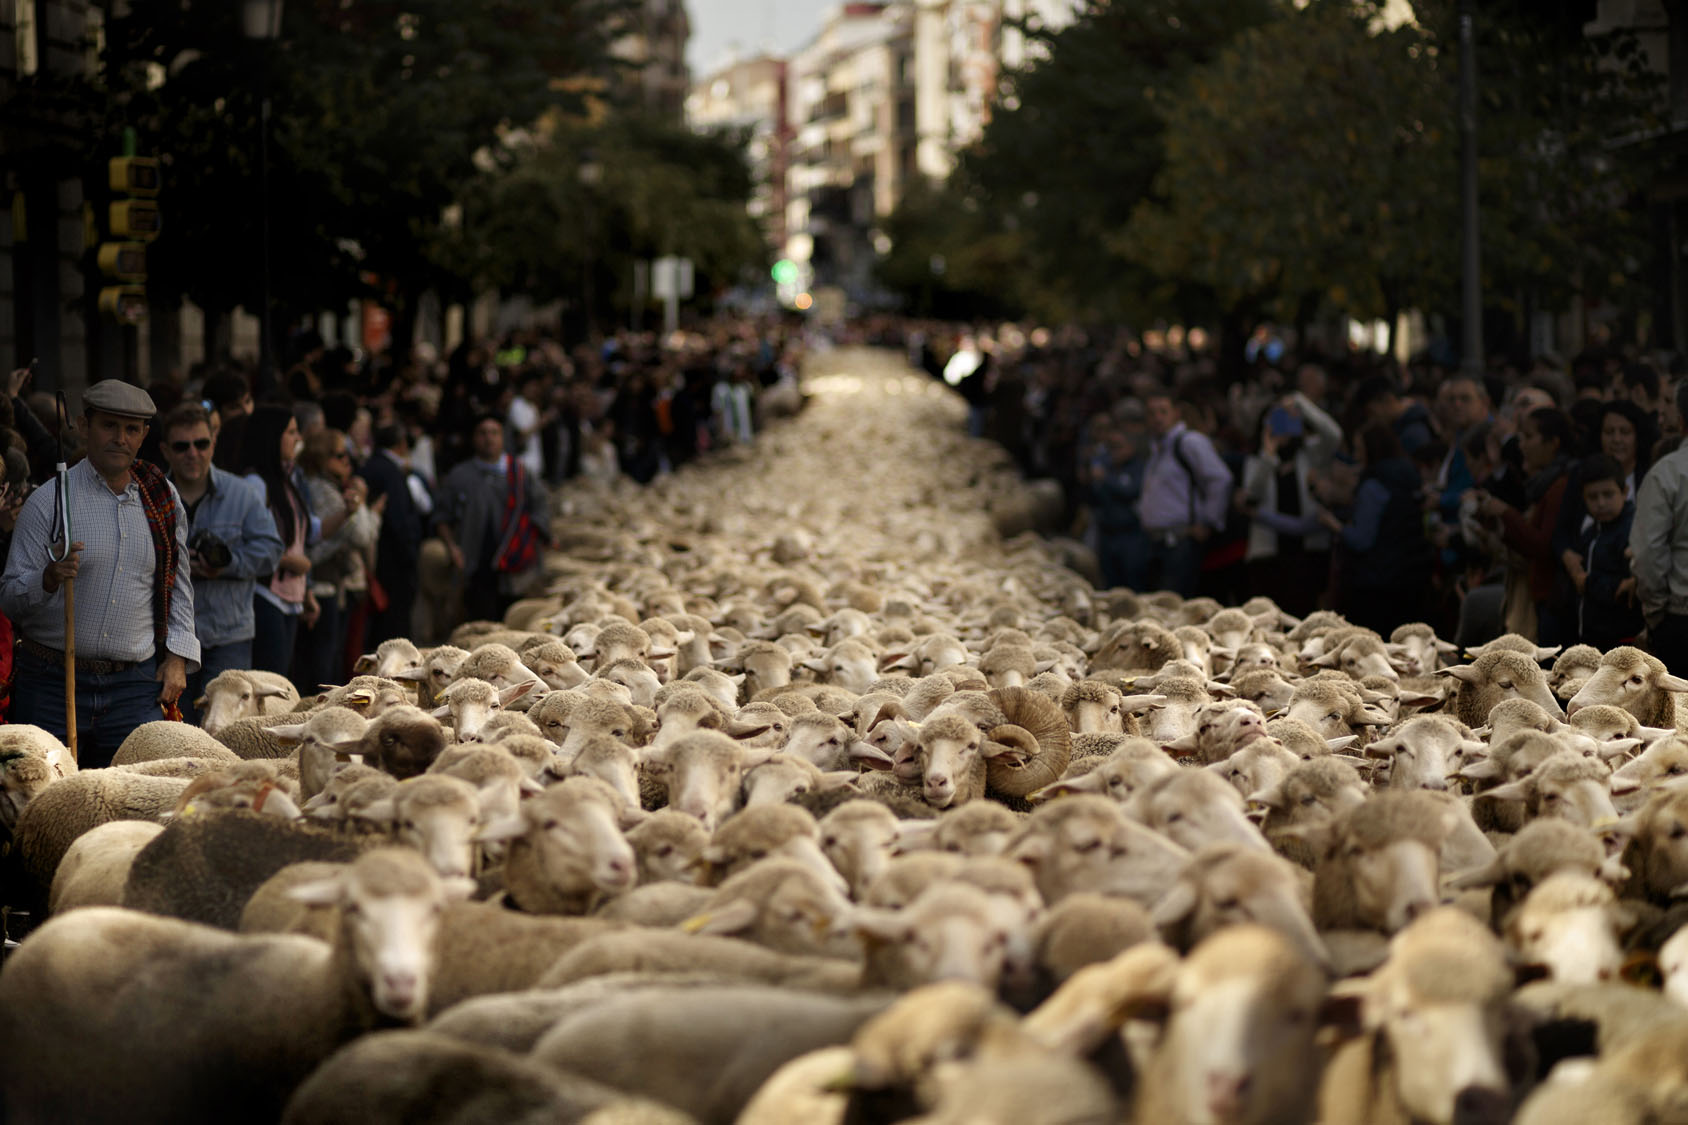 Sheep in Spain, elections around the world, Halloween in the Philippines | Oct. 25